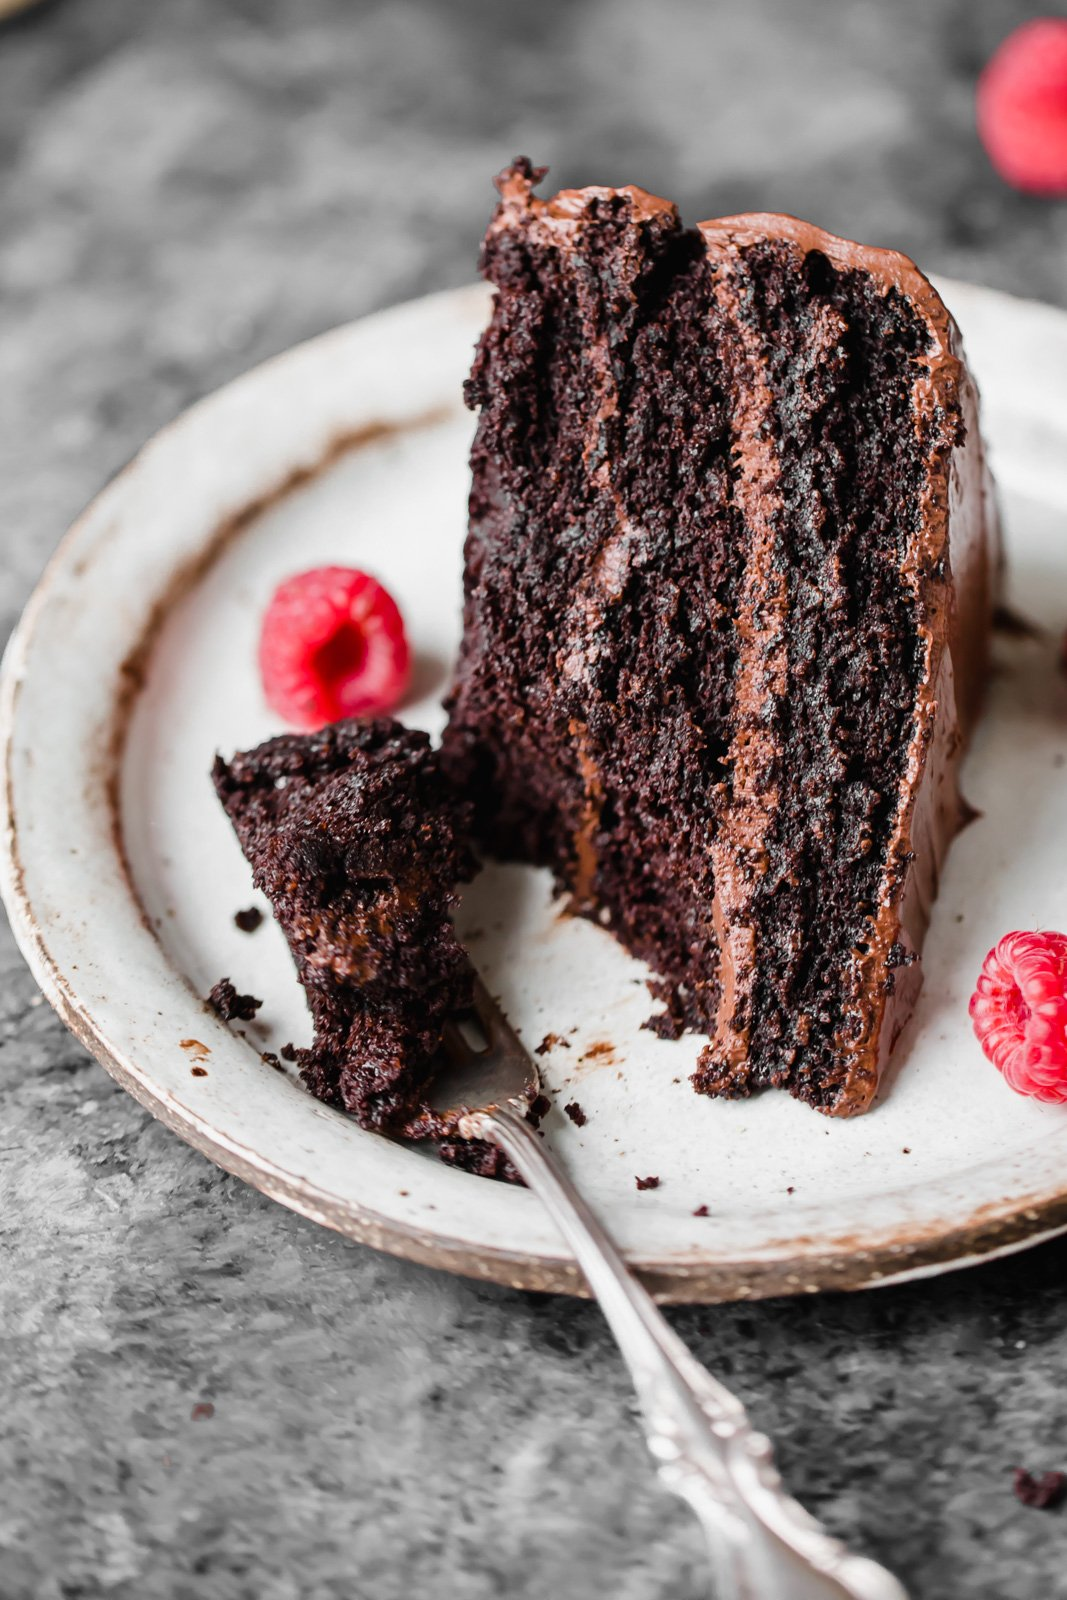 chocolate cake on a plate with raspberries and a fork